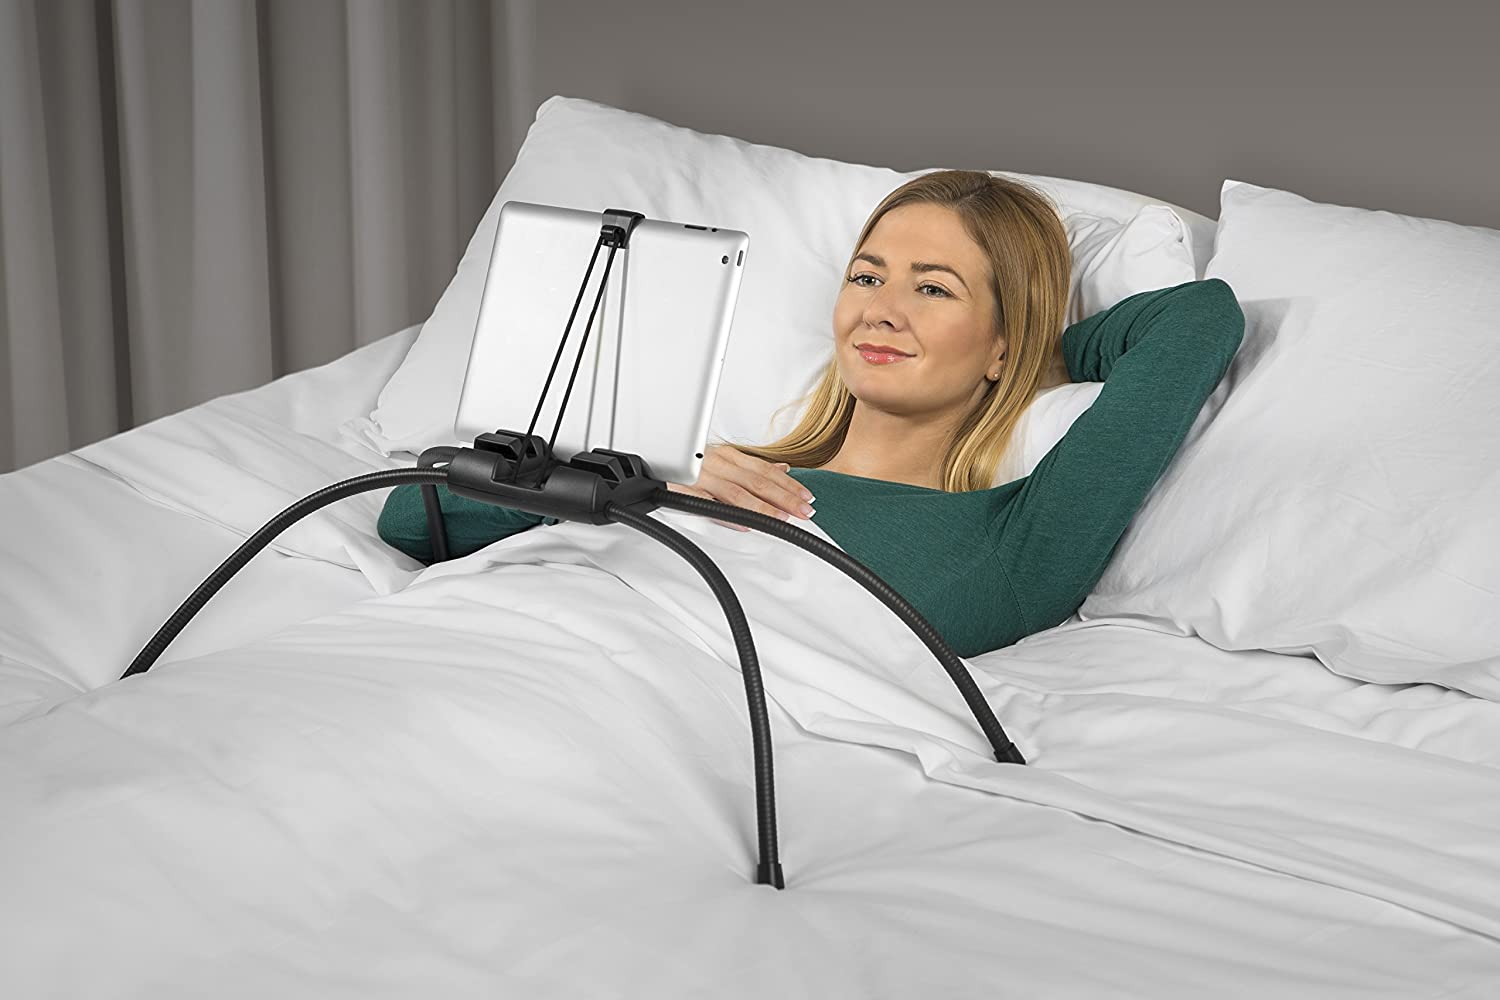 Amazon.com: Tablift Tablet Stand for the Bed, Sofa, or Any Uneven Surface -  By Nbryte: Computers & Accessories